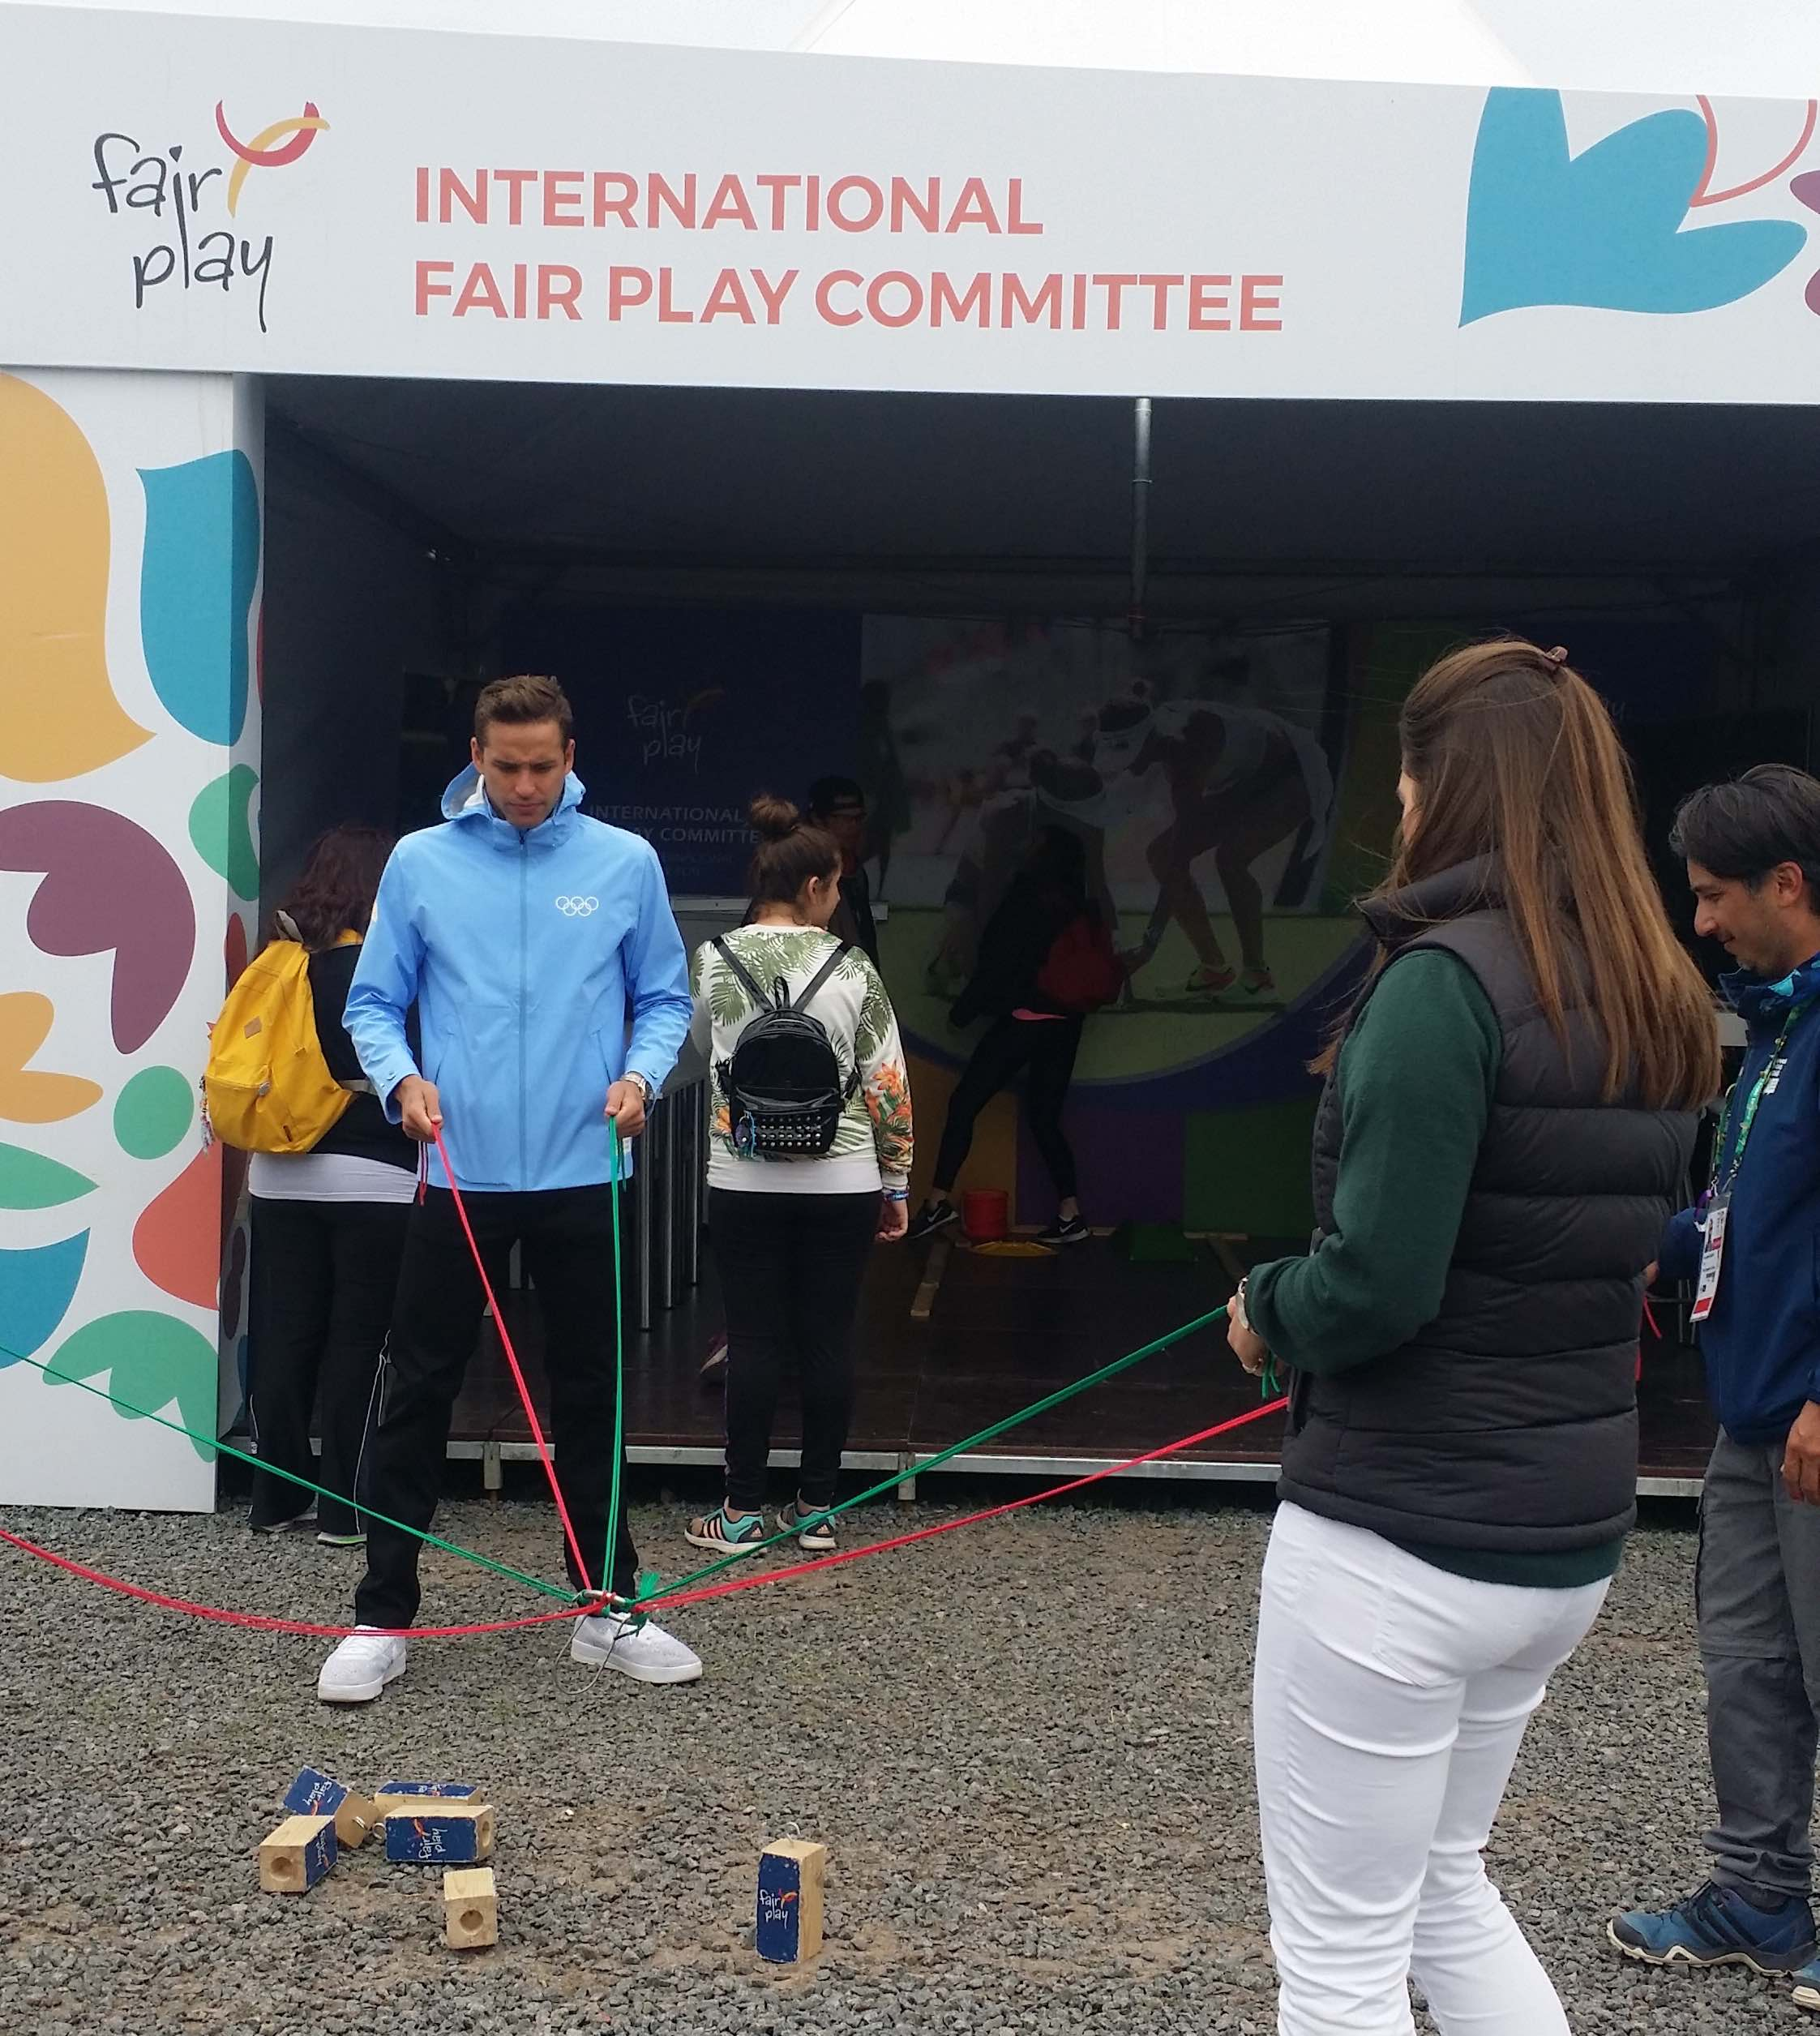 Chad Le Clos at CIFP Fair Play Booth in Buenos Aires